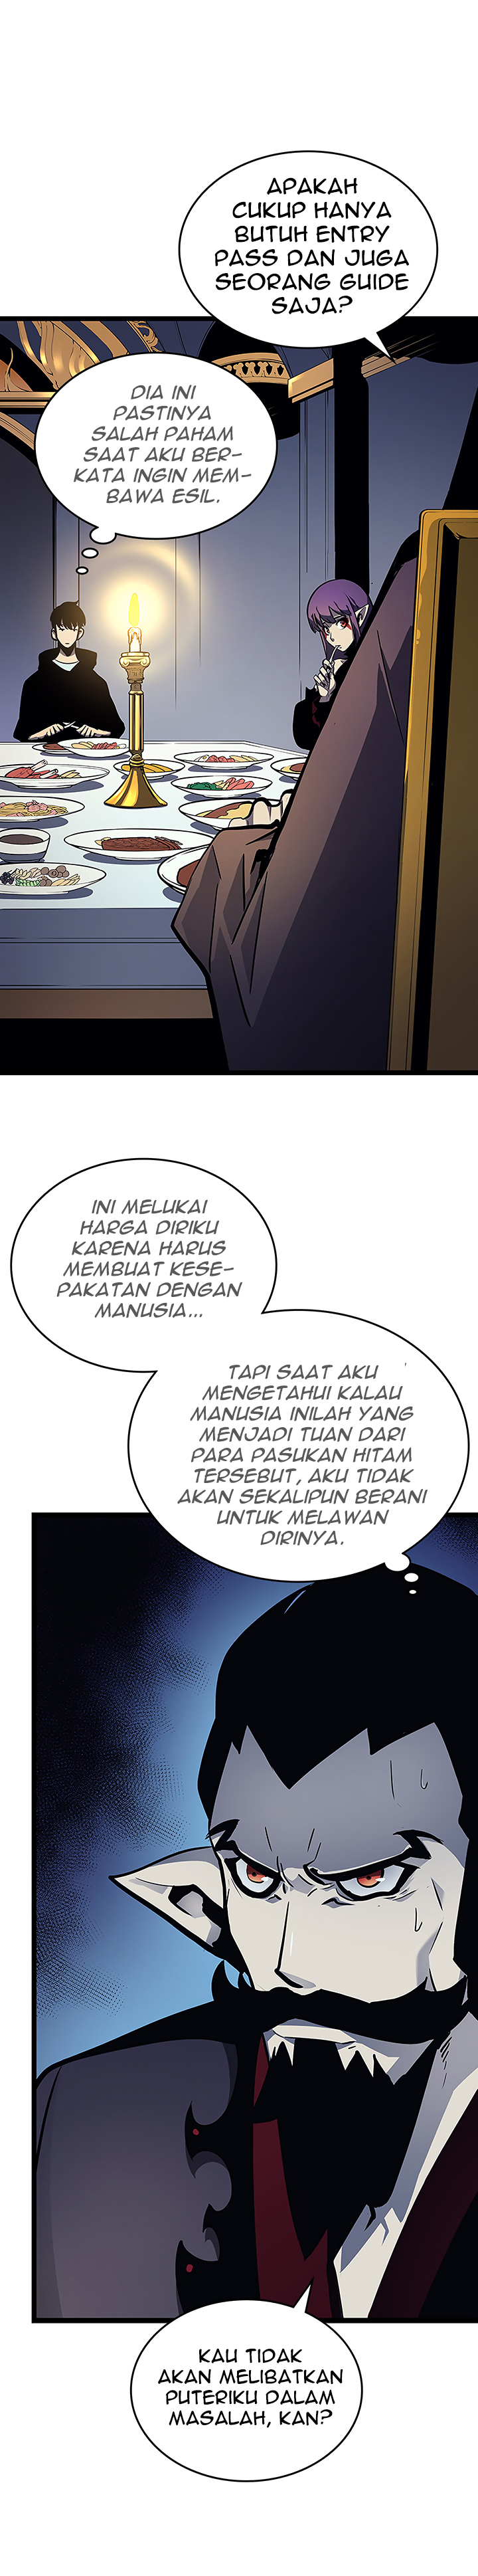 Solo Leveling Chapter 84 Indo gambar 3